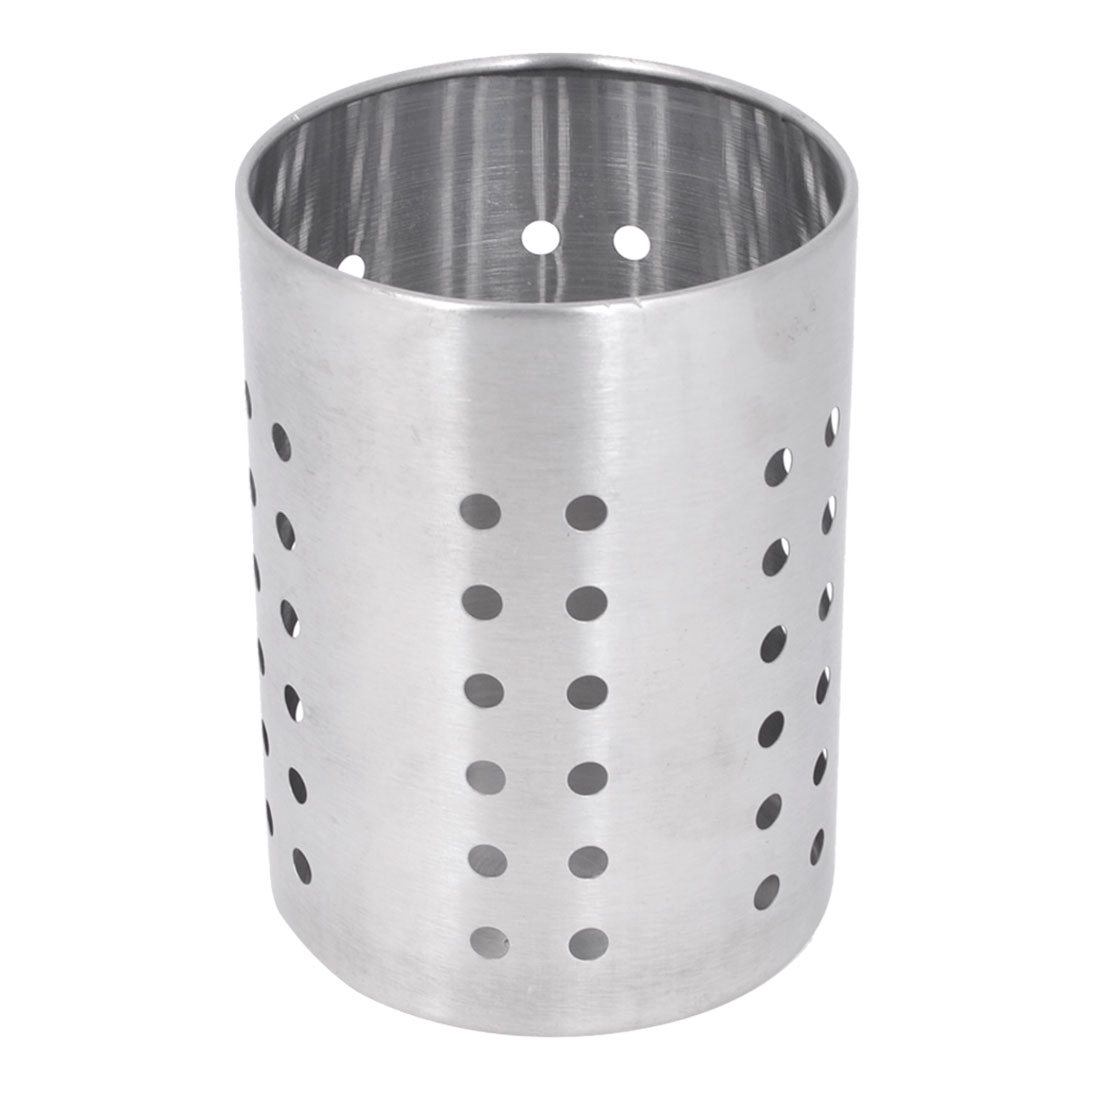 Home Round Hollow Out Hole Stainless Steel Spoon Chopsticks Holder Box